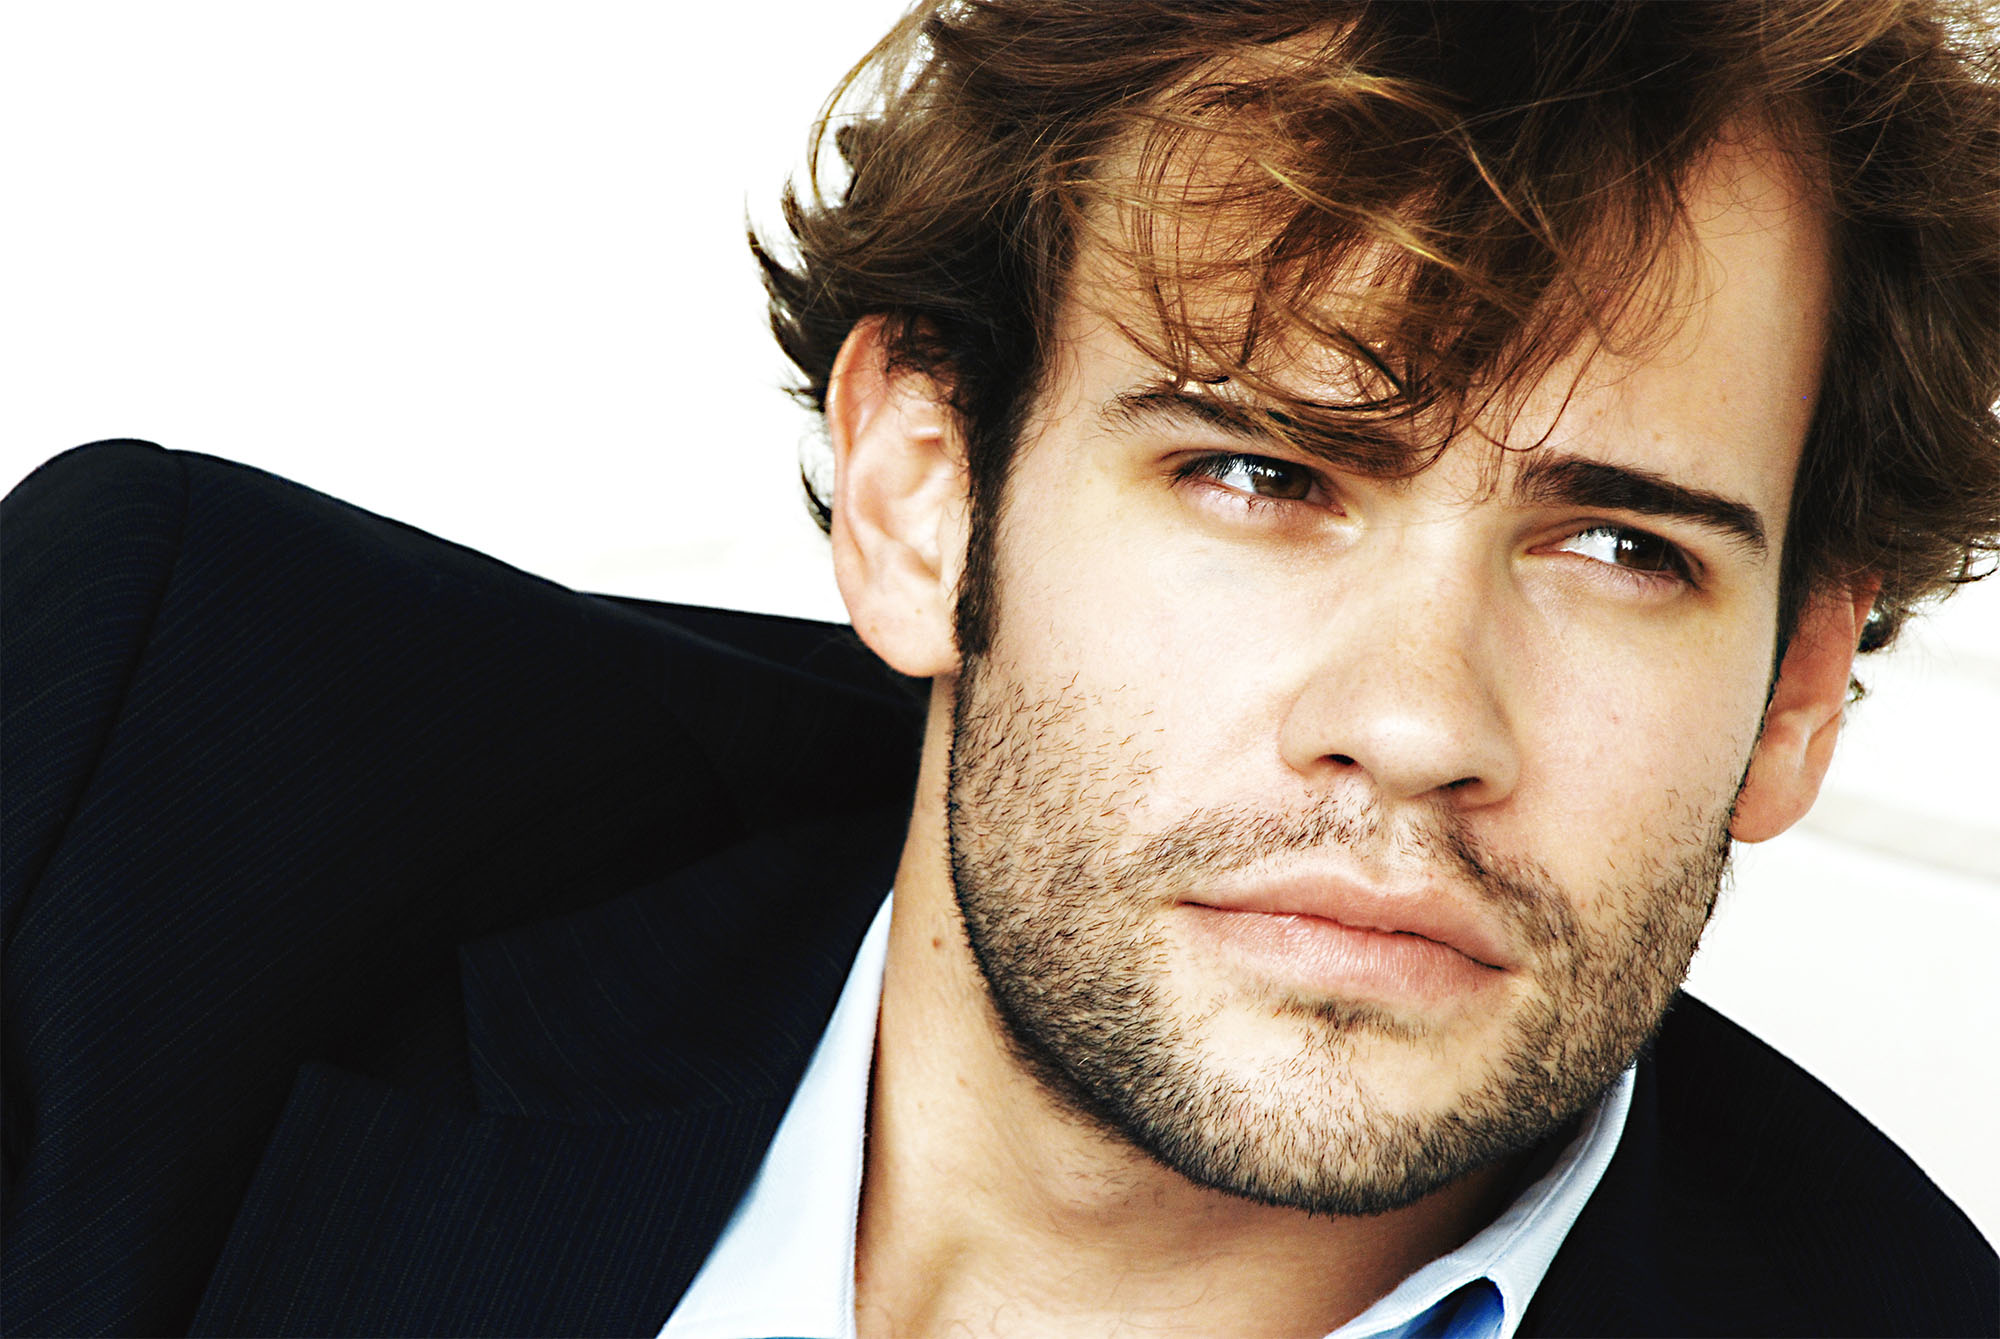 Rossif Sutherland nude (53 foto and video), Pussy, Fappening, Instagram, in bikini 2017